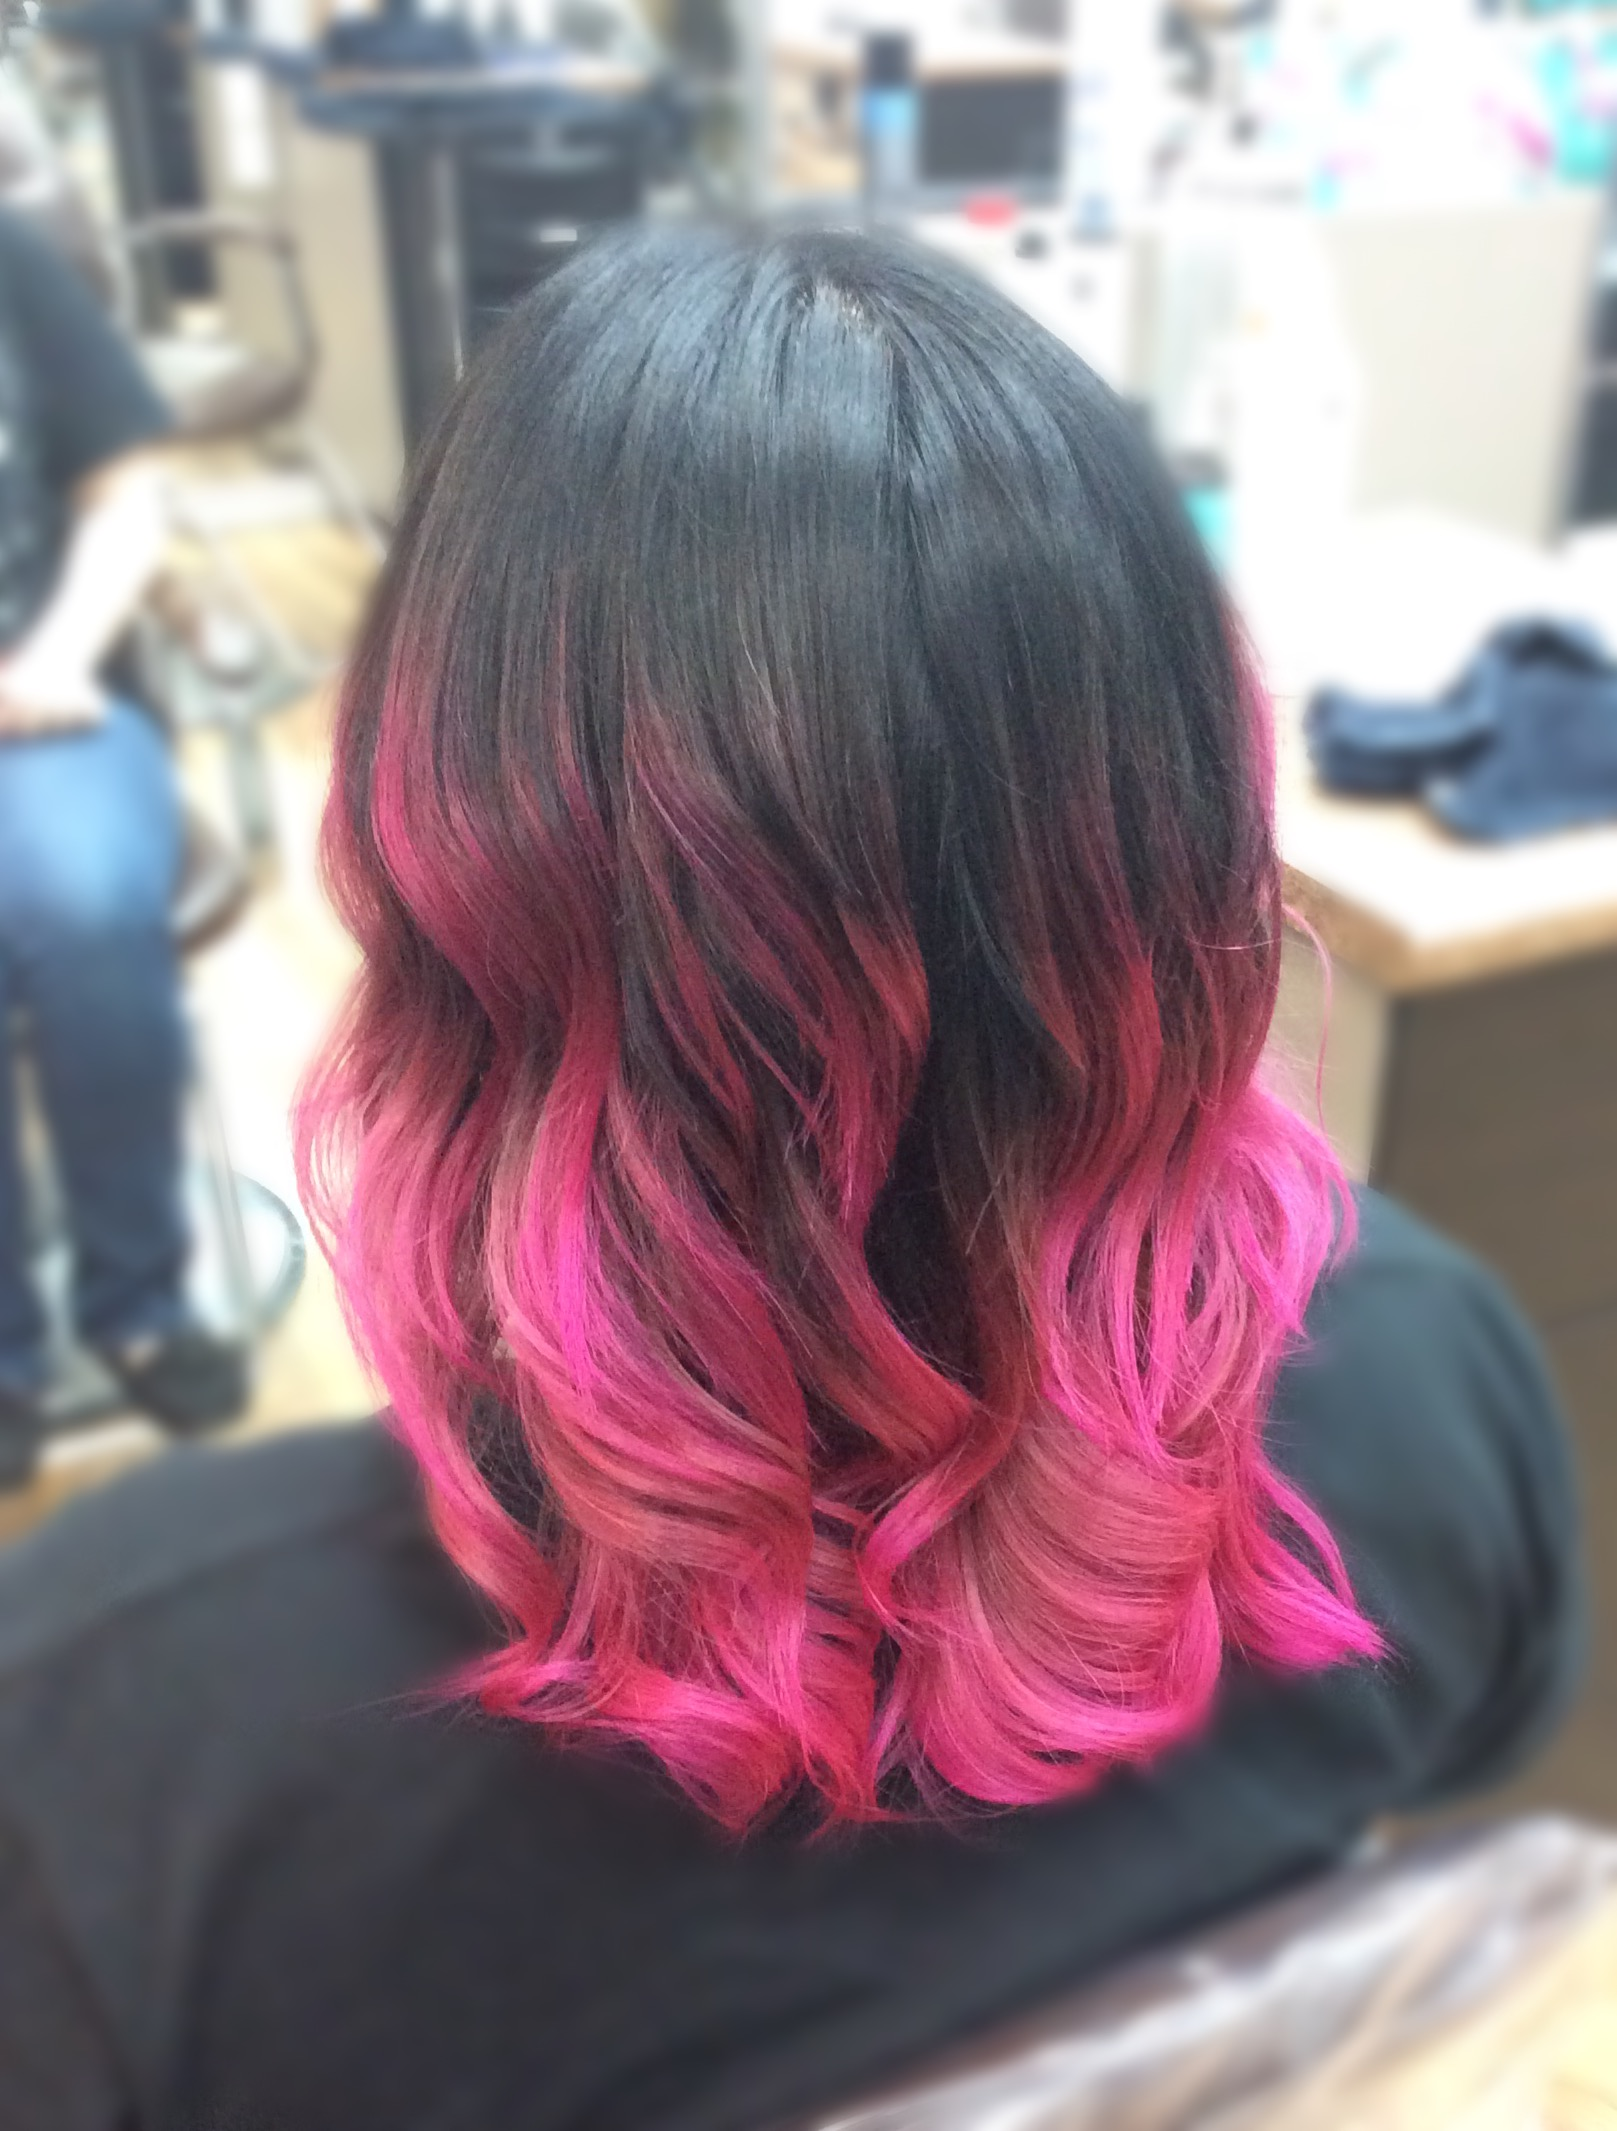 Women Hairstyle Inn Salons Trusted Saskatoon Salons For Colour Grad Hair With Best Stylists